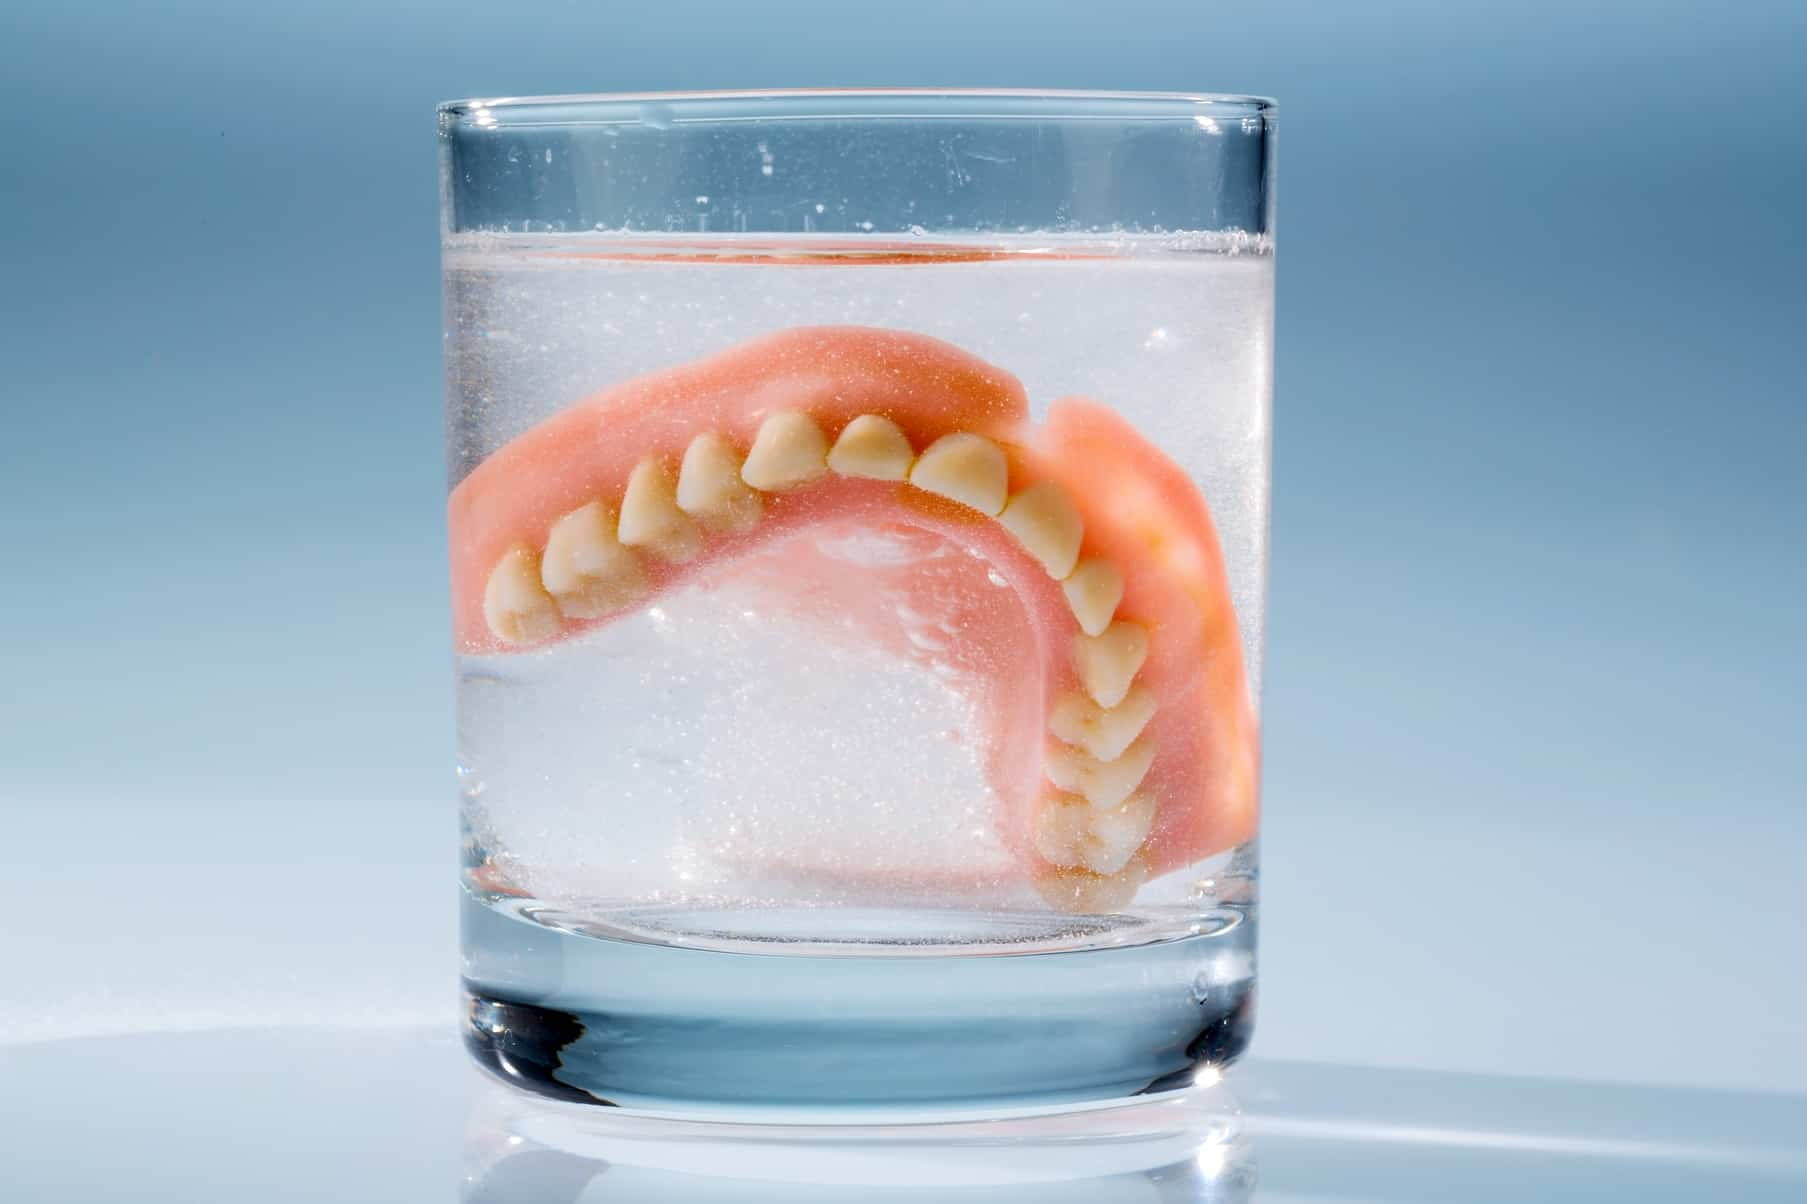 Common Causes of Denture Damage